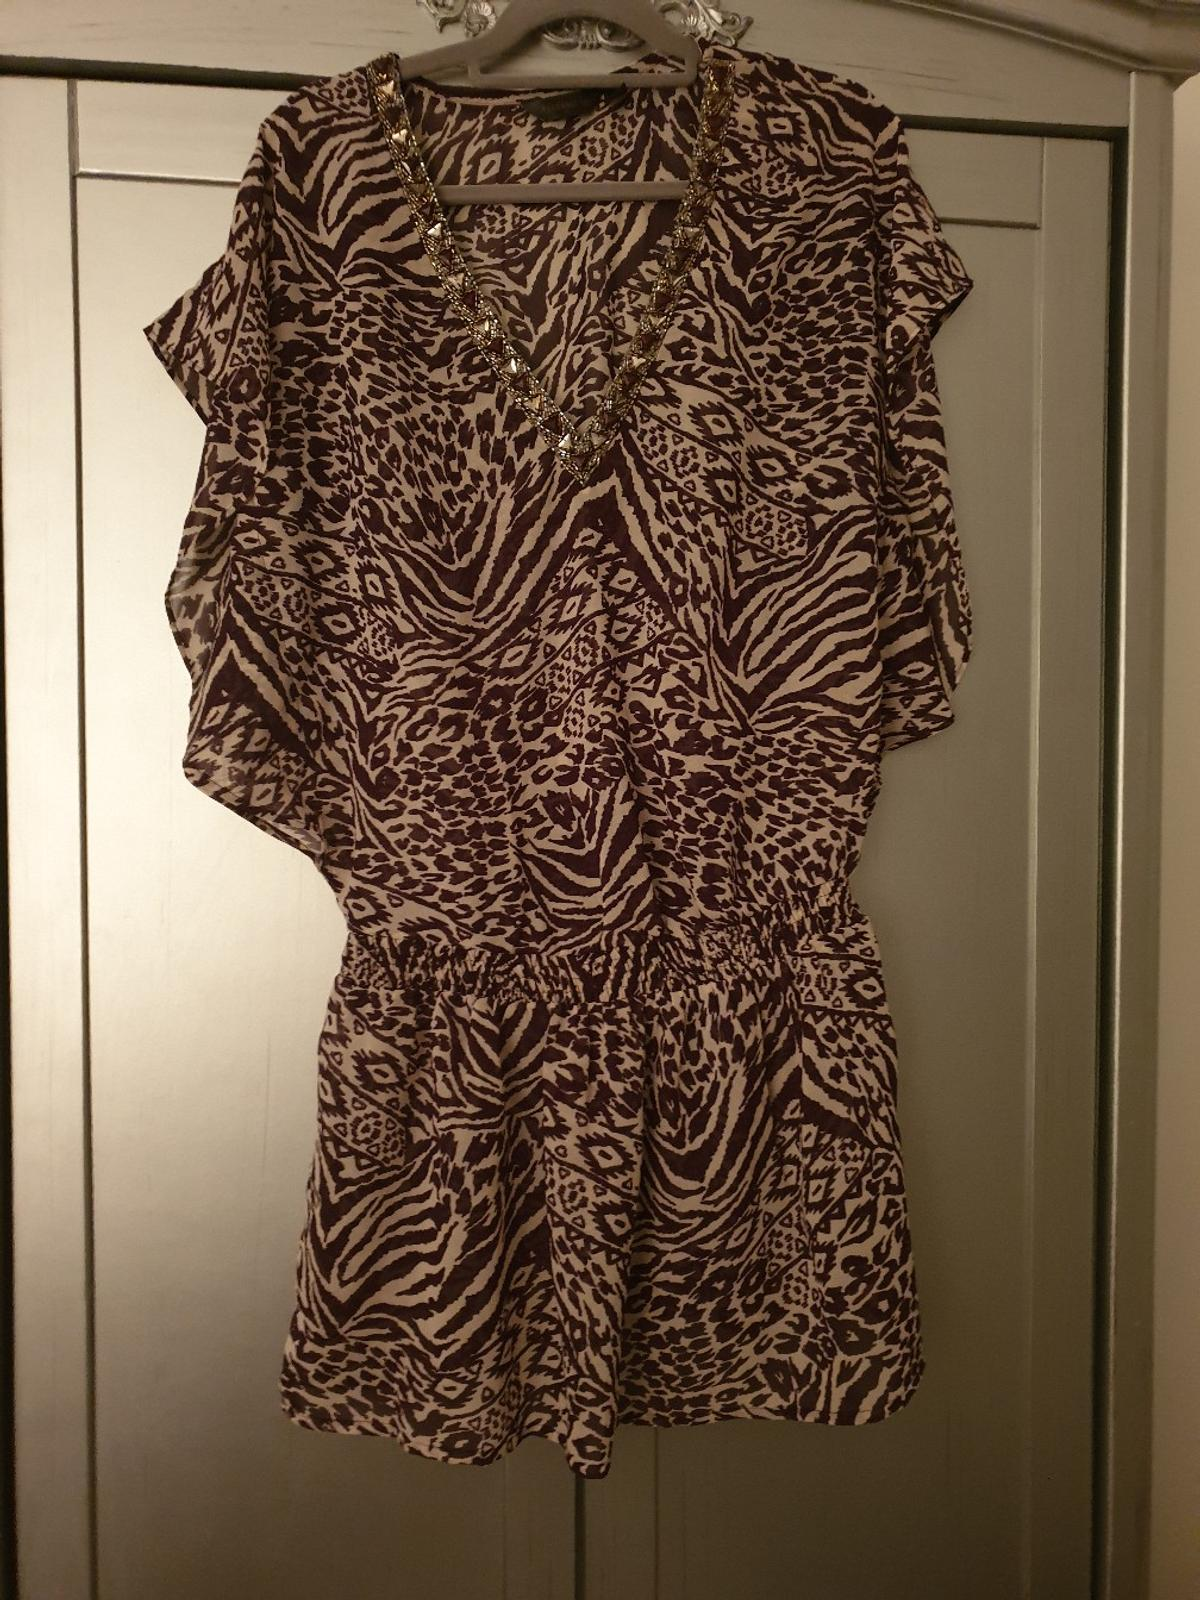 e5223bf5f52bc Accessorize beach cover up in Barnsley for £6.00 for sale - Shpock